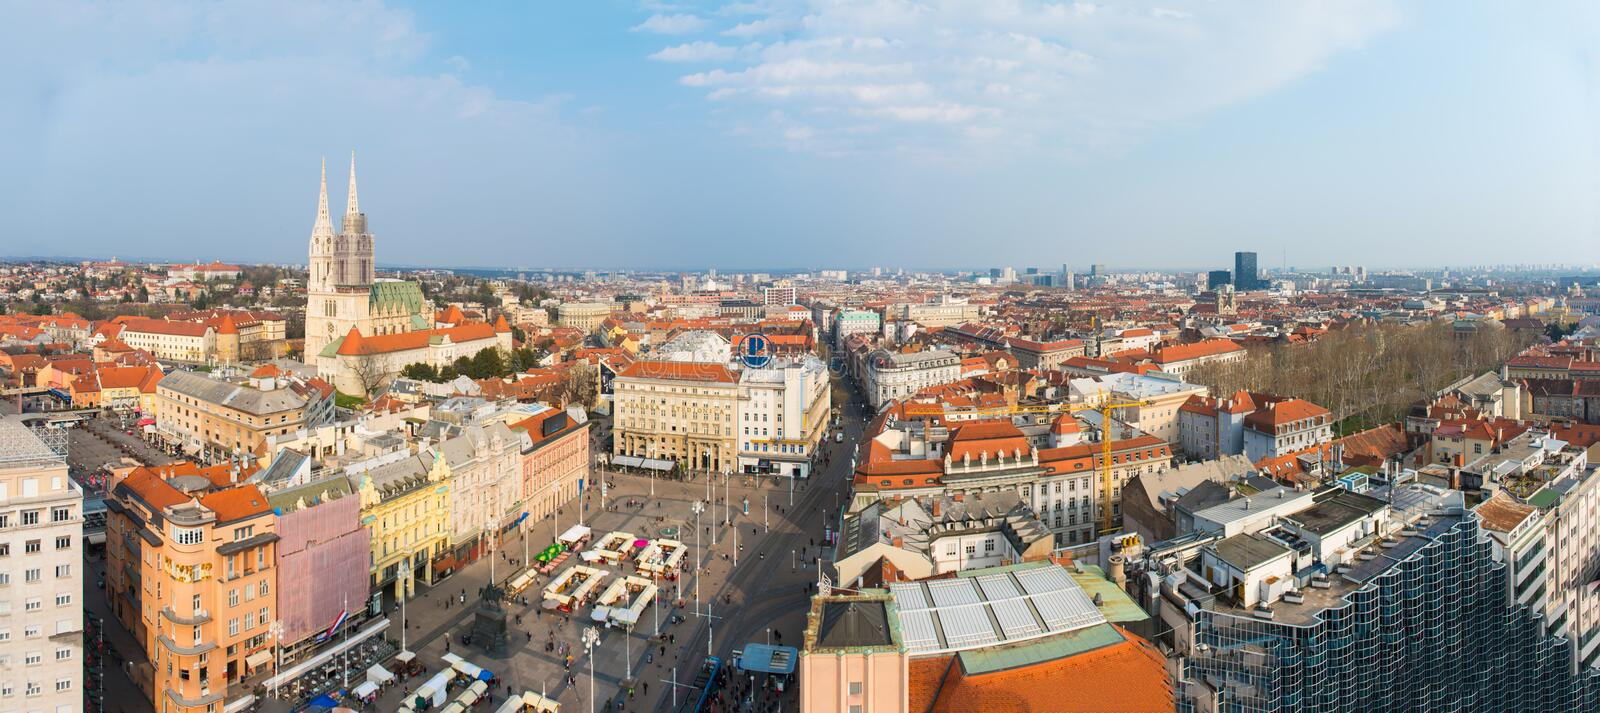 Panorama de ville de Zagreb, Croatie photo stock